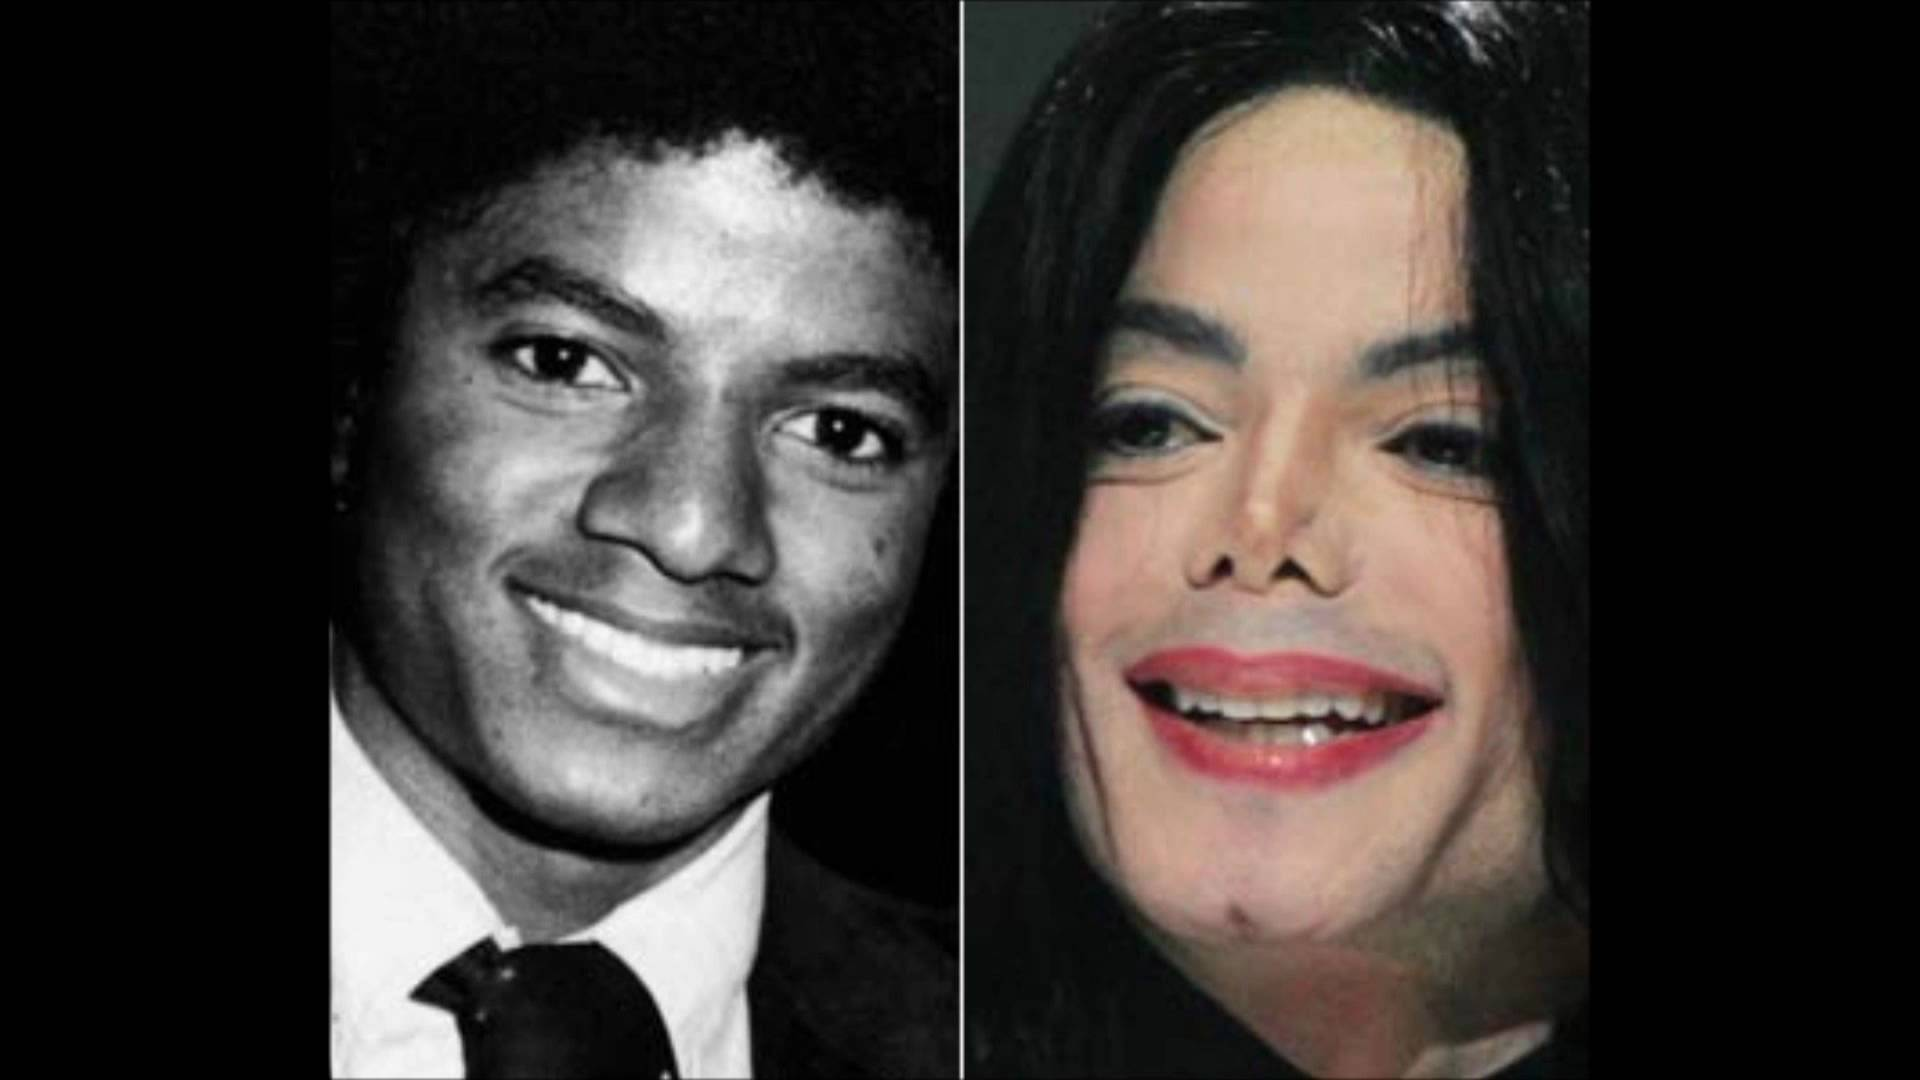 michael jackson without plastic surgery photo - 1